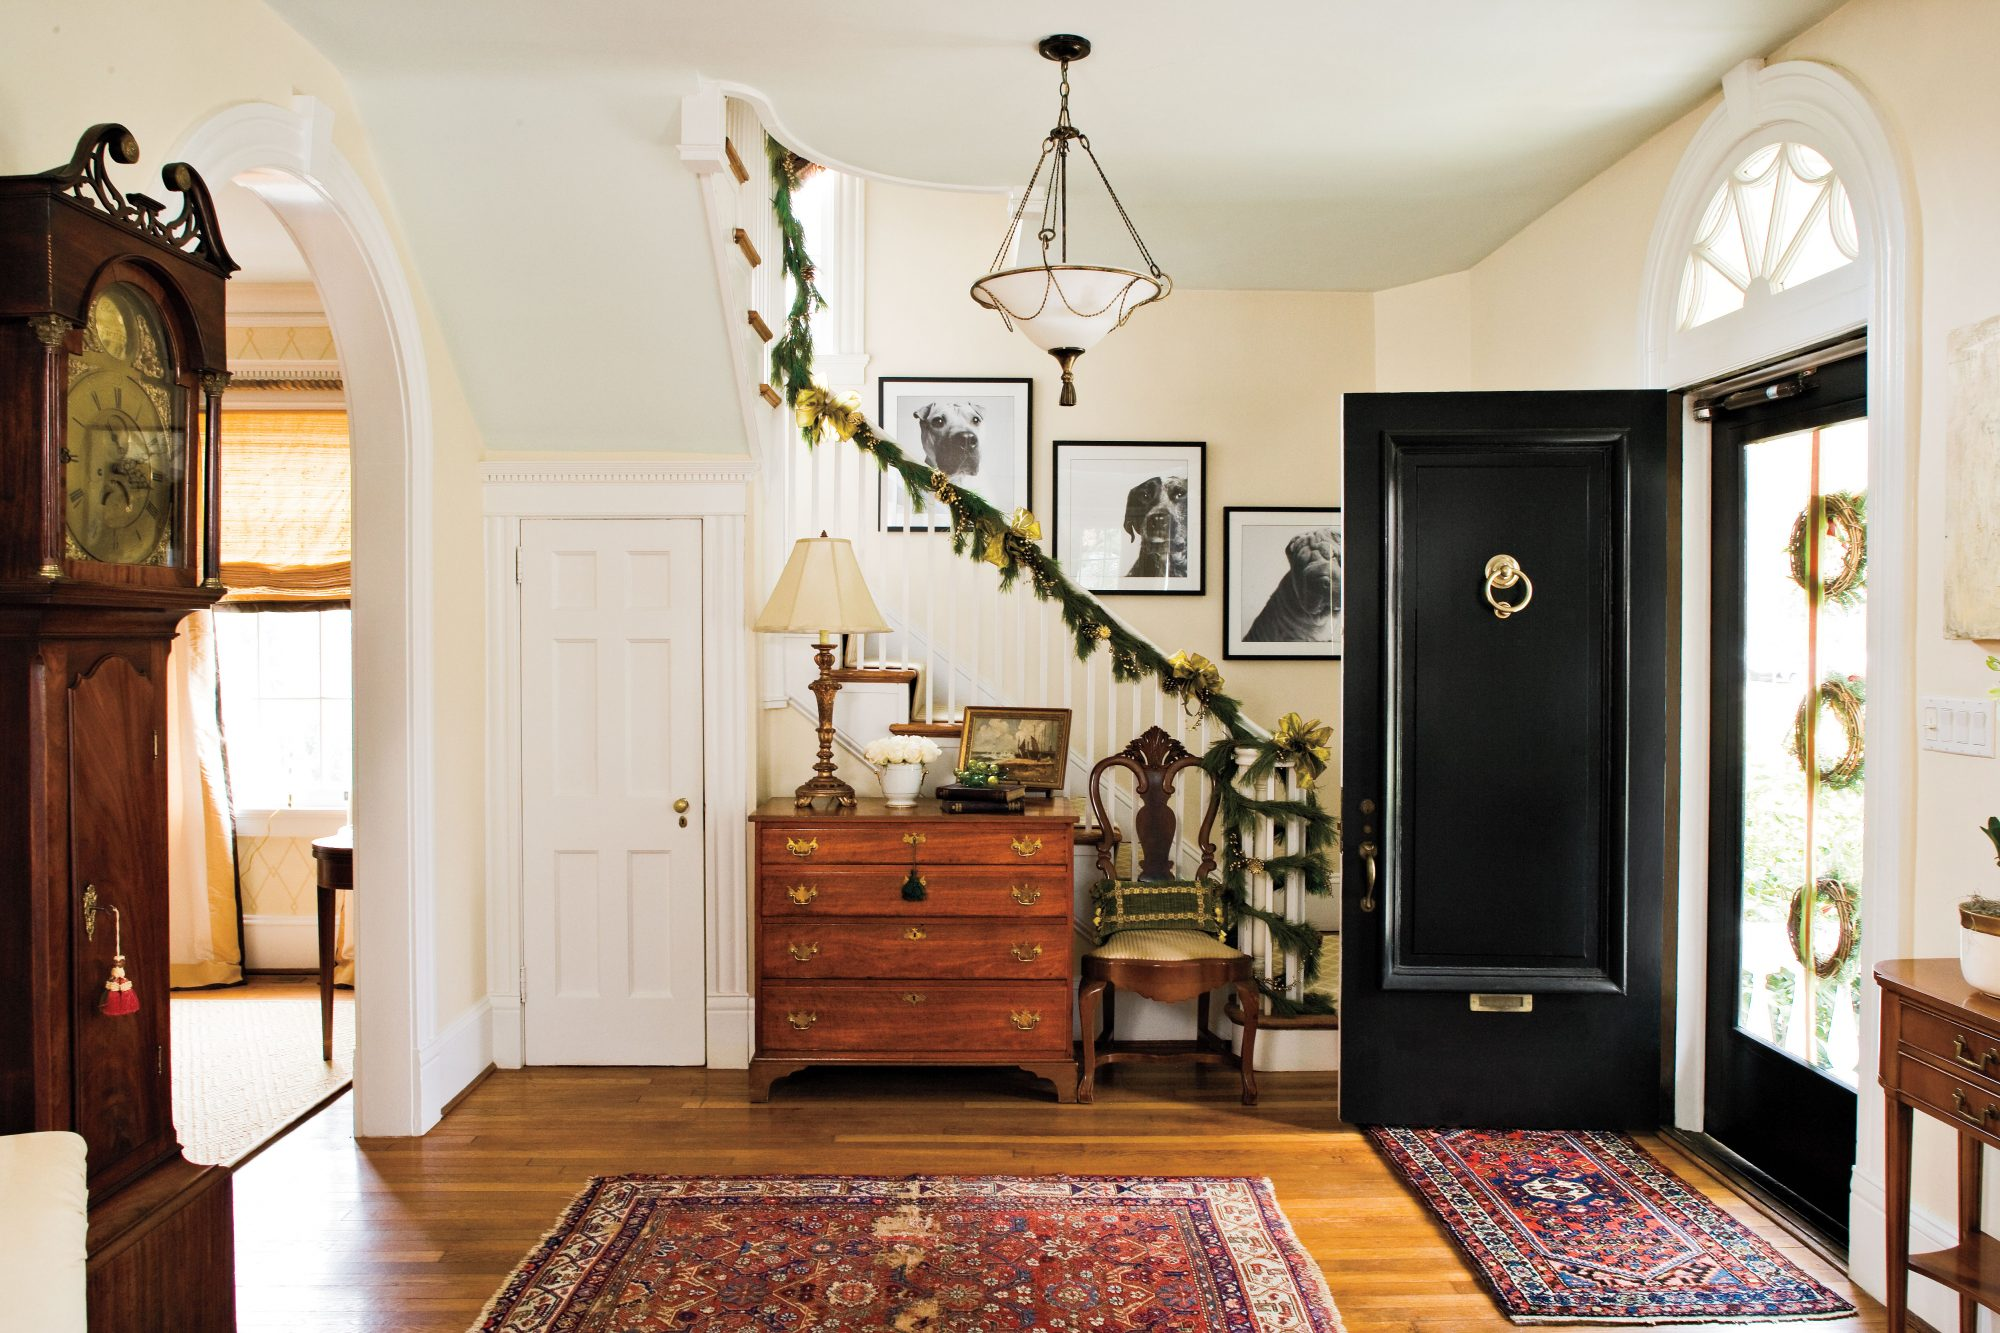 Pictures of house interiors decorated for christmas